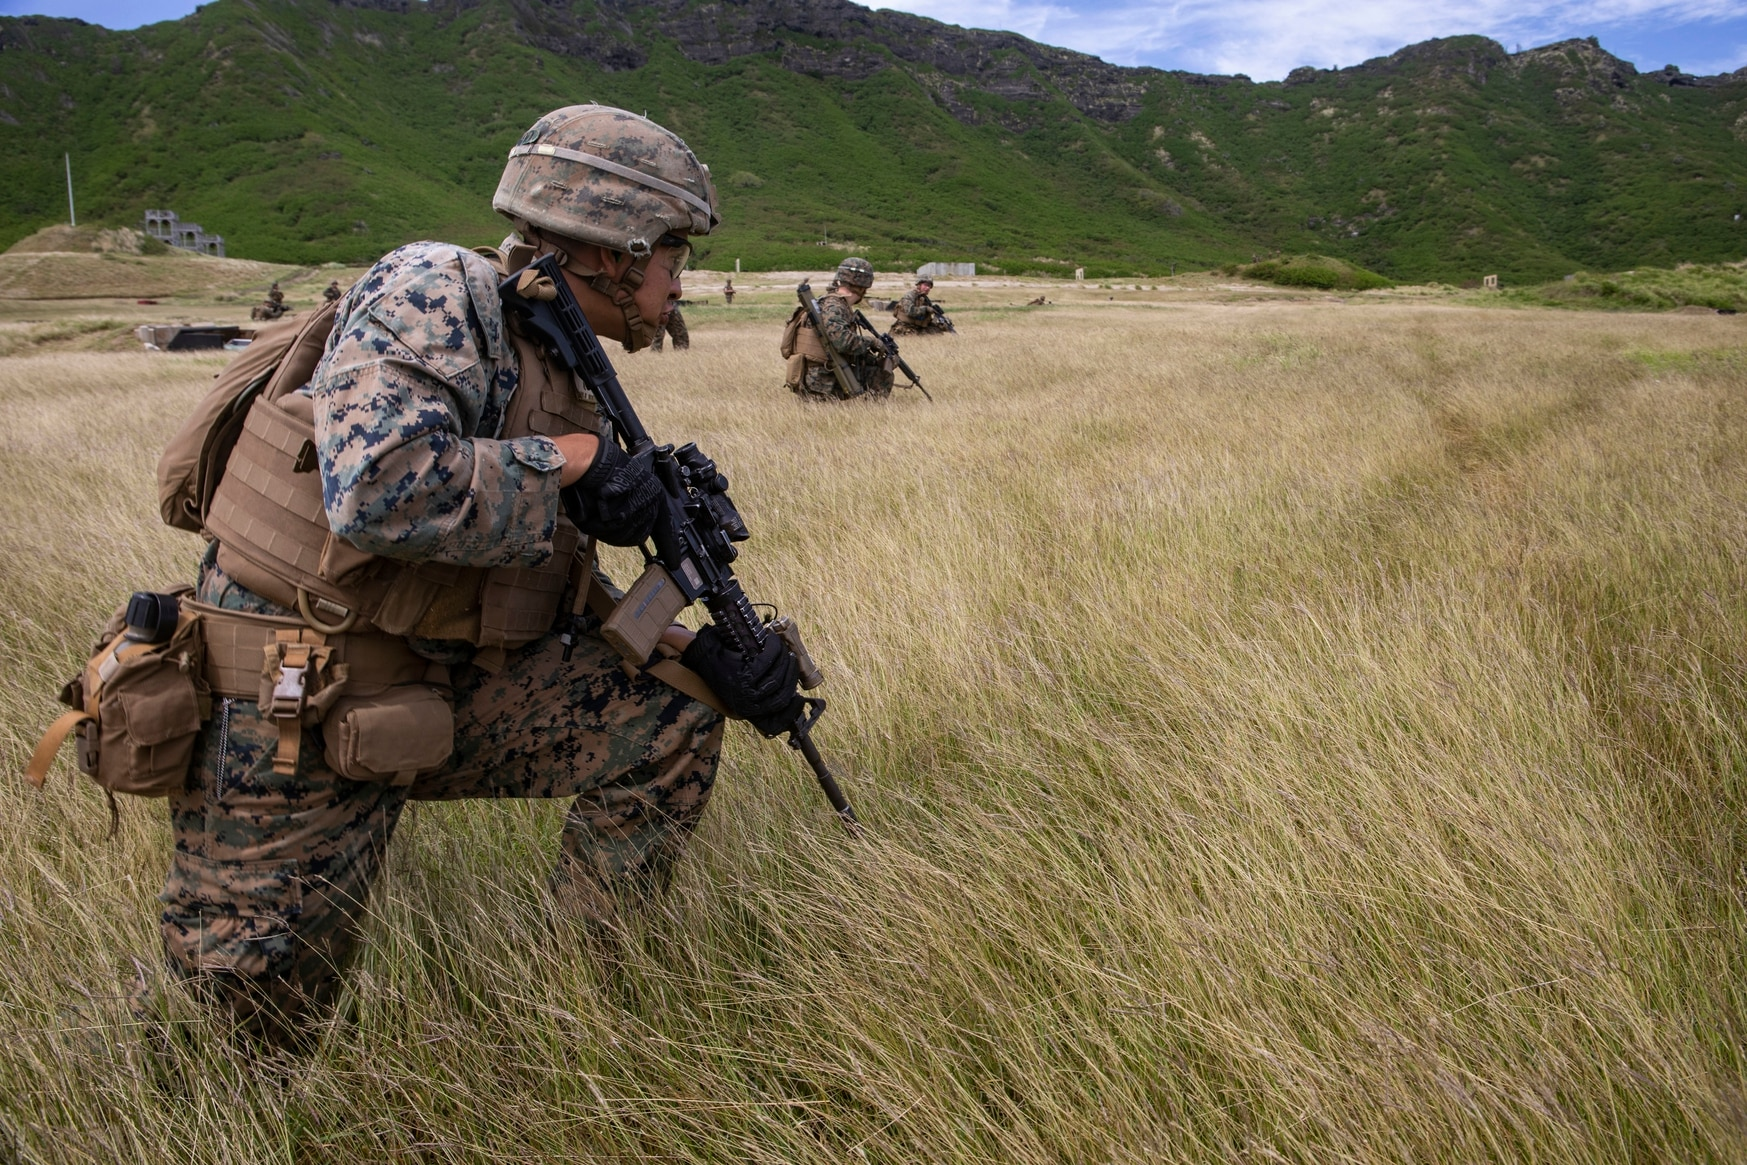 Marines with Fox Company, 2nd Battalion, 3rd Marine Regiment, prepare to fire at targets during a squad supported attack at the Kaneohe Bay Range Training Facility, Marine Corps Base Hawaii, Mar. 6. (Sgt. Jesus Sepulveda Torres/Marine Corps)